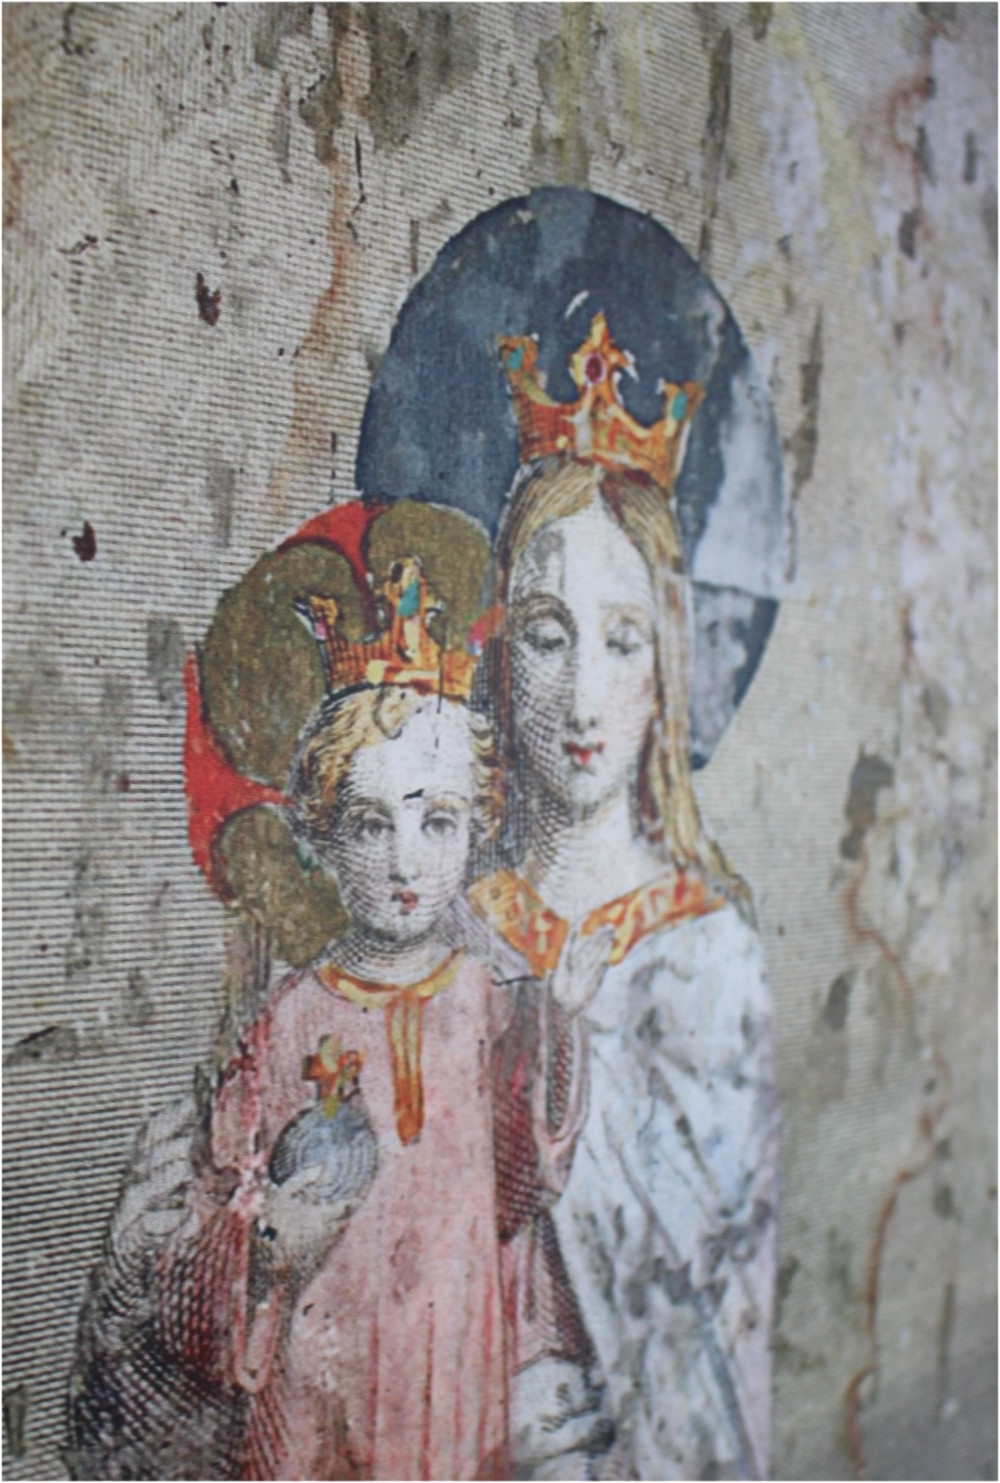 Wood Wall Art With Virgin Mary And Angels/cherubs In Antique Throughout Well Liked Vintage Style Wall Art (View 14 of 15)